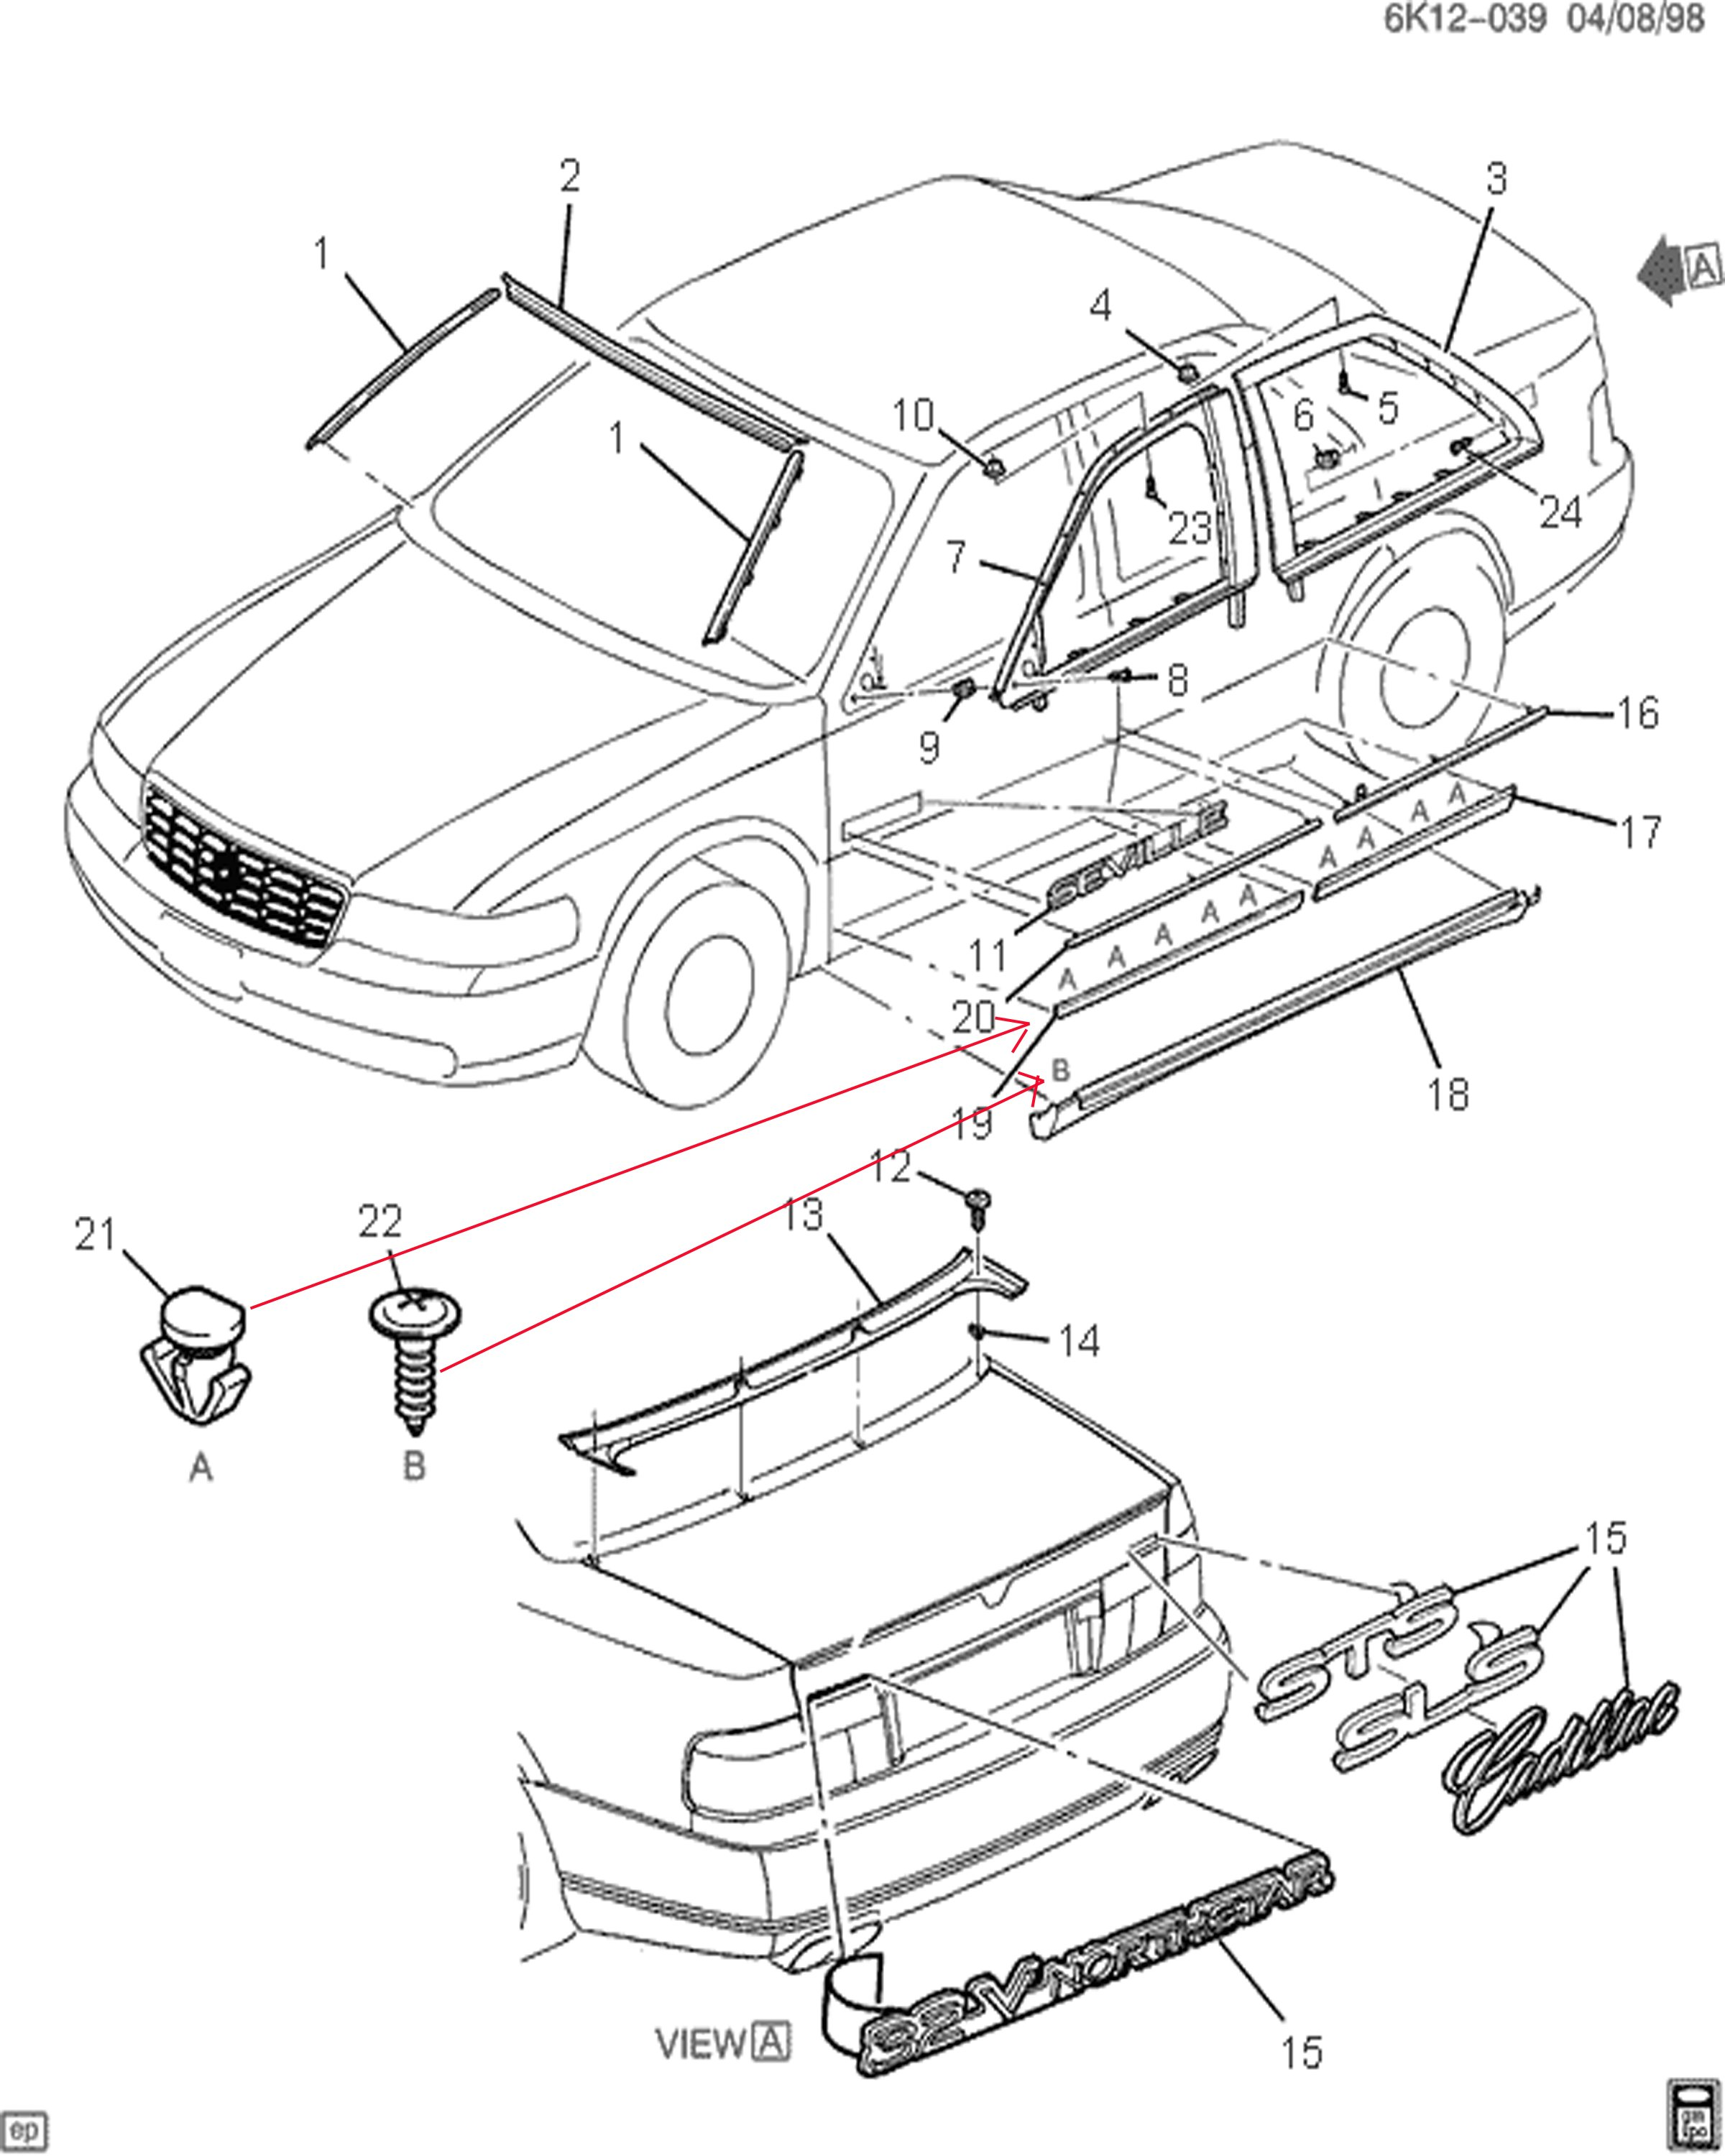 Cadillac Catera Door Diagram Com